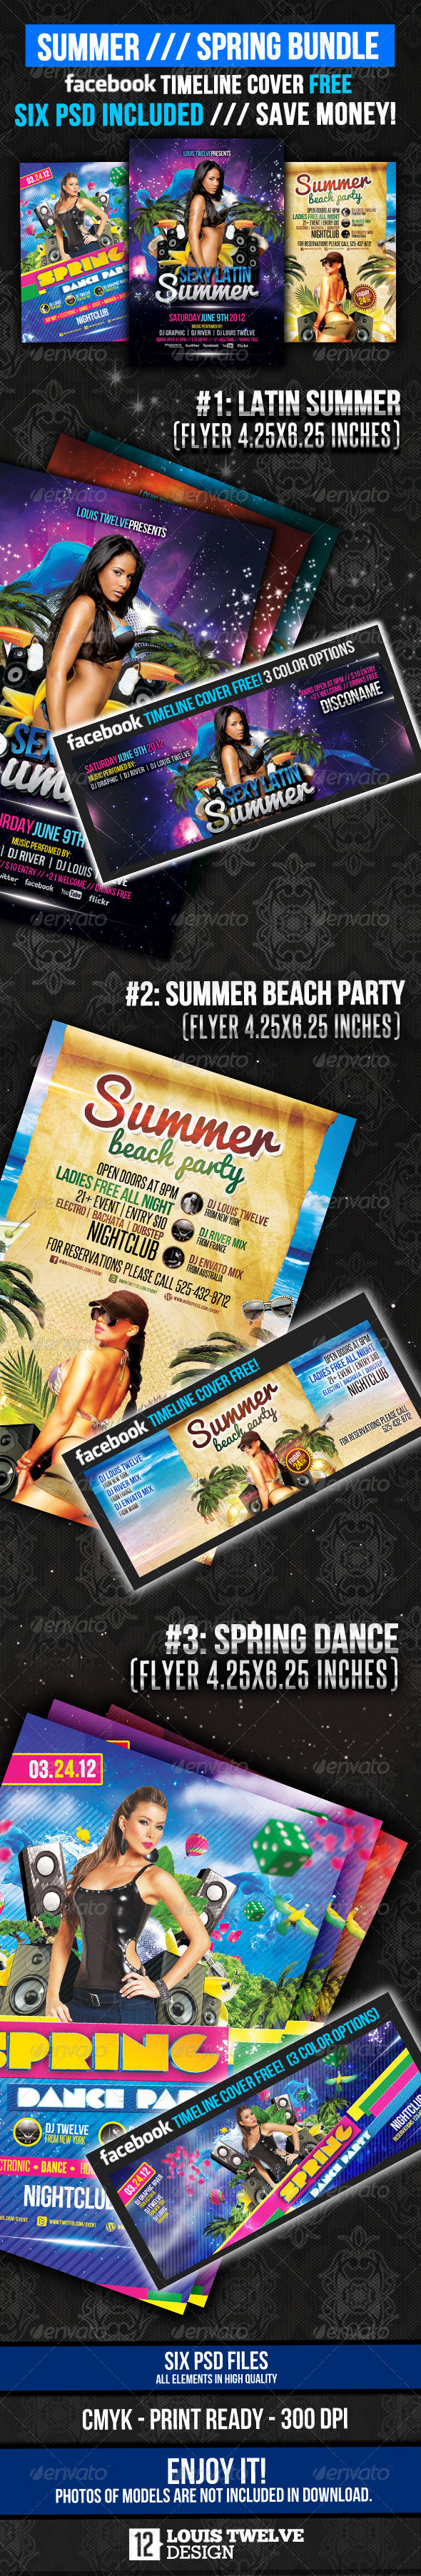 Summer and Spring Bundle Flyer + Fb Timeline - Clubs & Parties Events